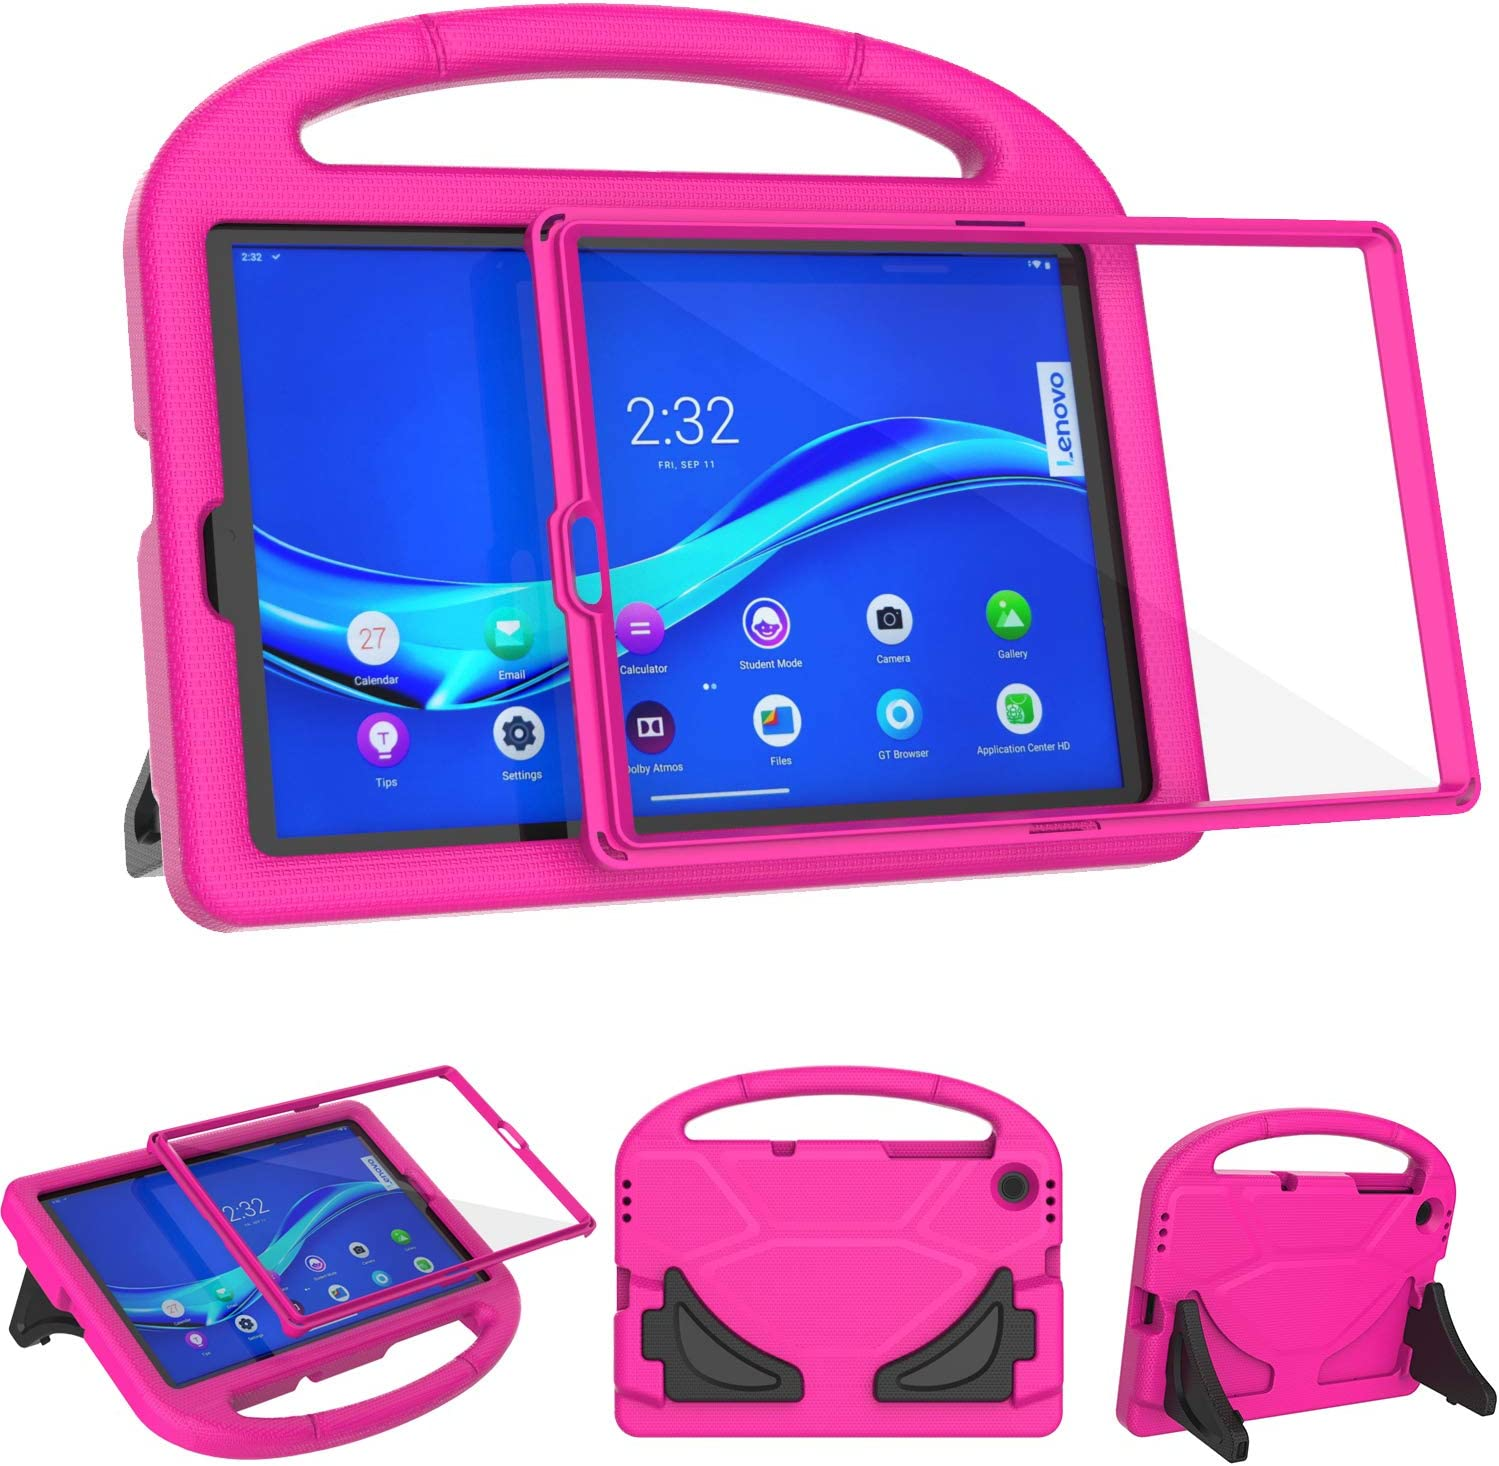 TeeFity Kids Case for Lenovo Tab M10 FHD Plus 10.3 inch Case, Shockproof Lenovo Tab M10 Plus 10.3 Kids Case with Built in Screen Protector for Lenovo Tab M10 Plus 10.3 2020 Tablet, Rose